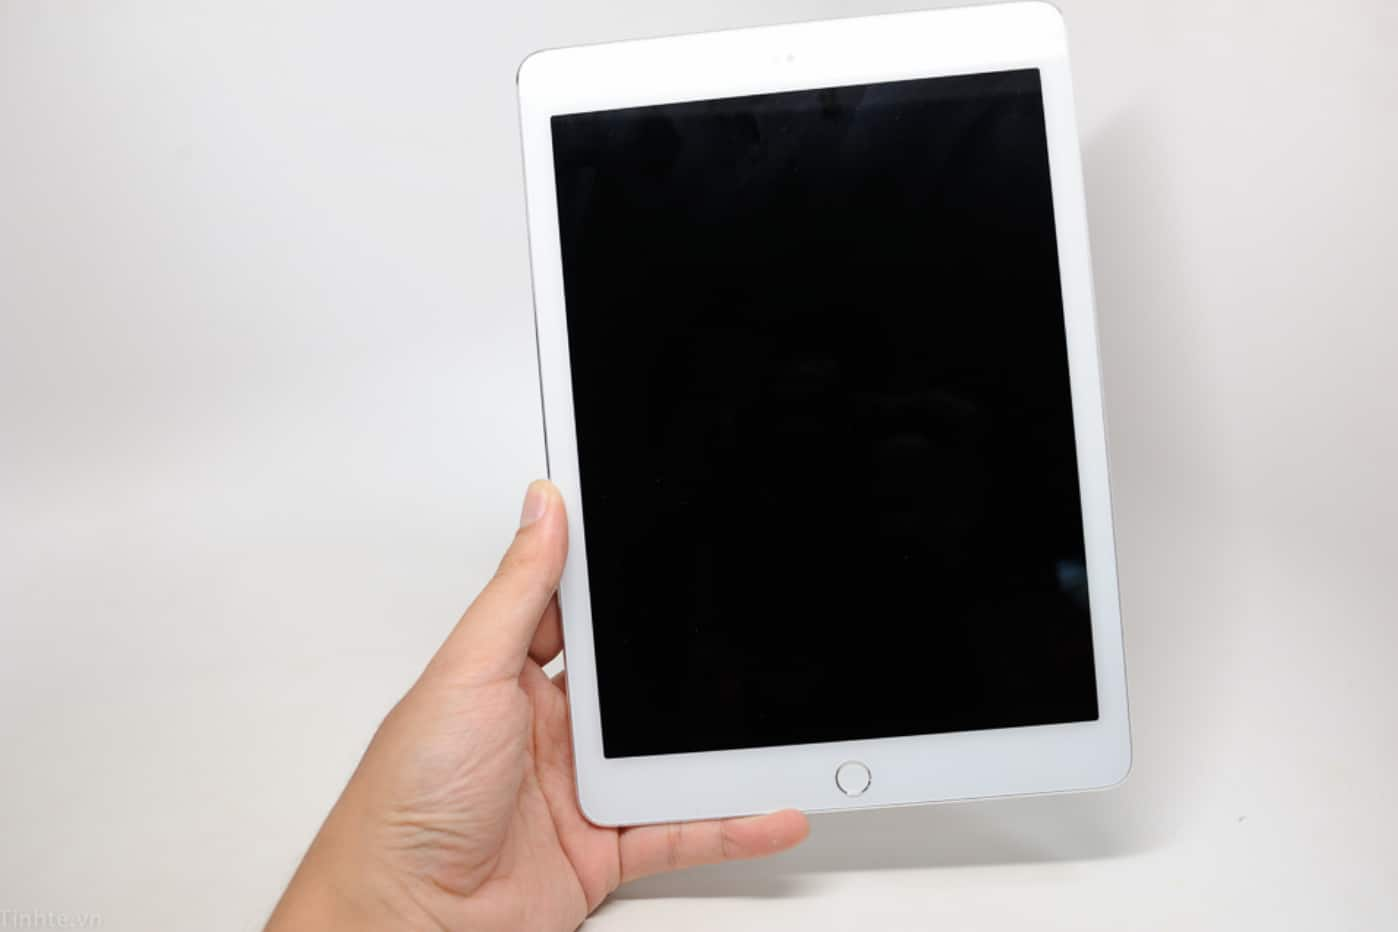 Ipad Air 2 New Details About Ipad Air 2 More To Come October 16th